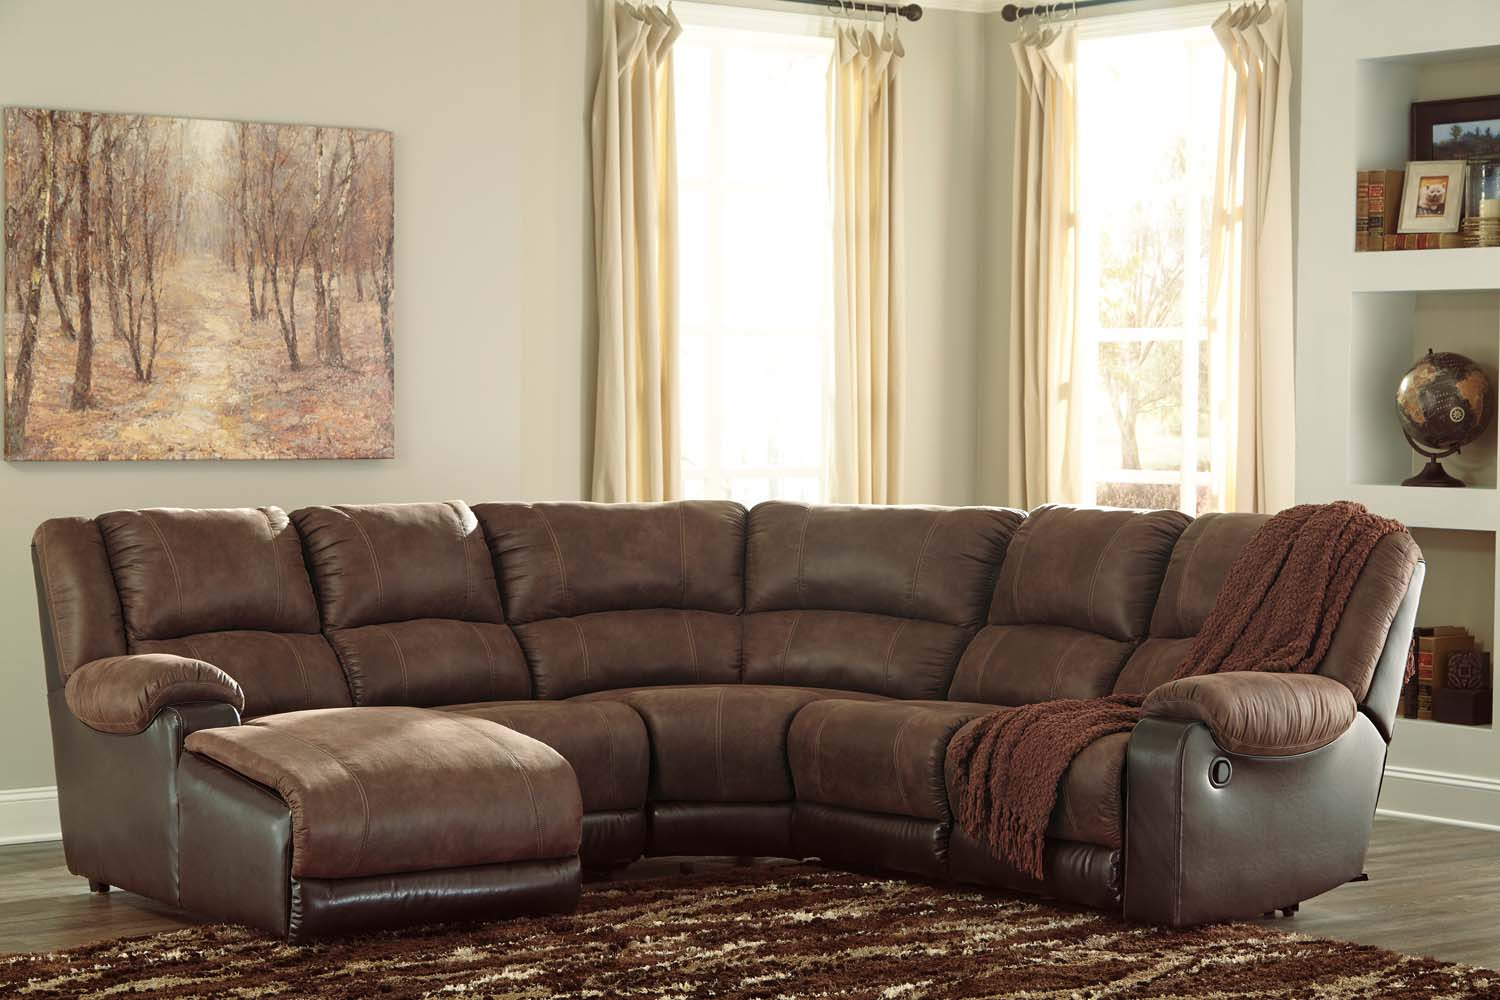 LAF Corner Chaise : laf corner chaise - Sectionals, Sofas & Couches